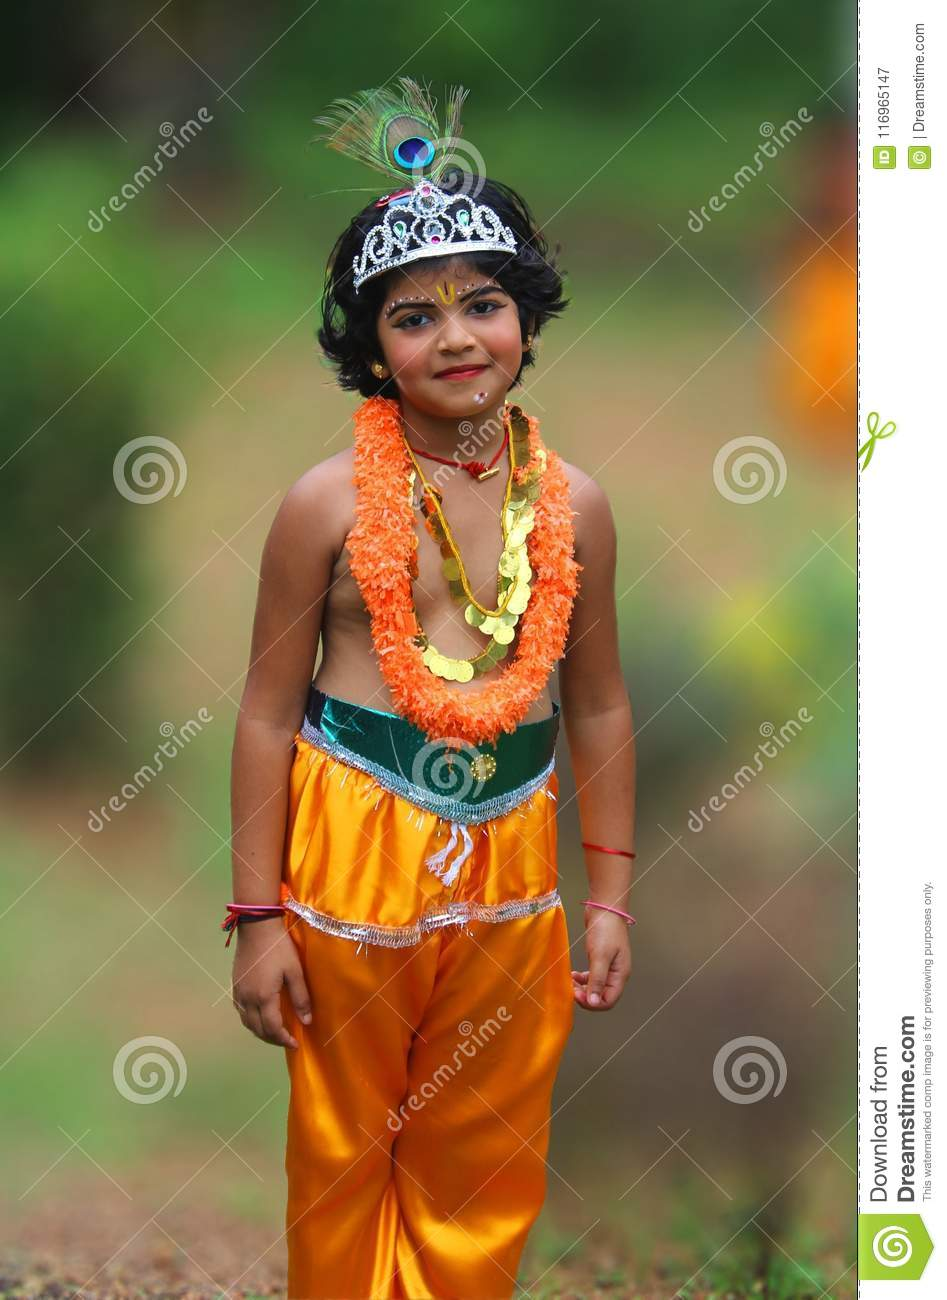 Image of: Shri Krishna Cute Little Asian Girl Dressed As Lord Krishna Foap Cute Little Asian Girl Dressed As Lord Krishna Editorial